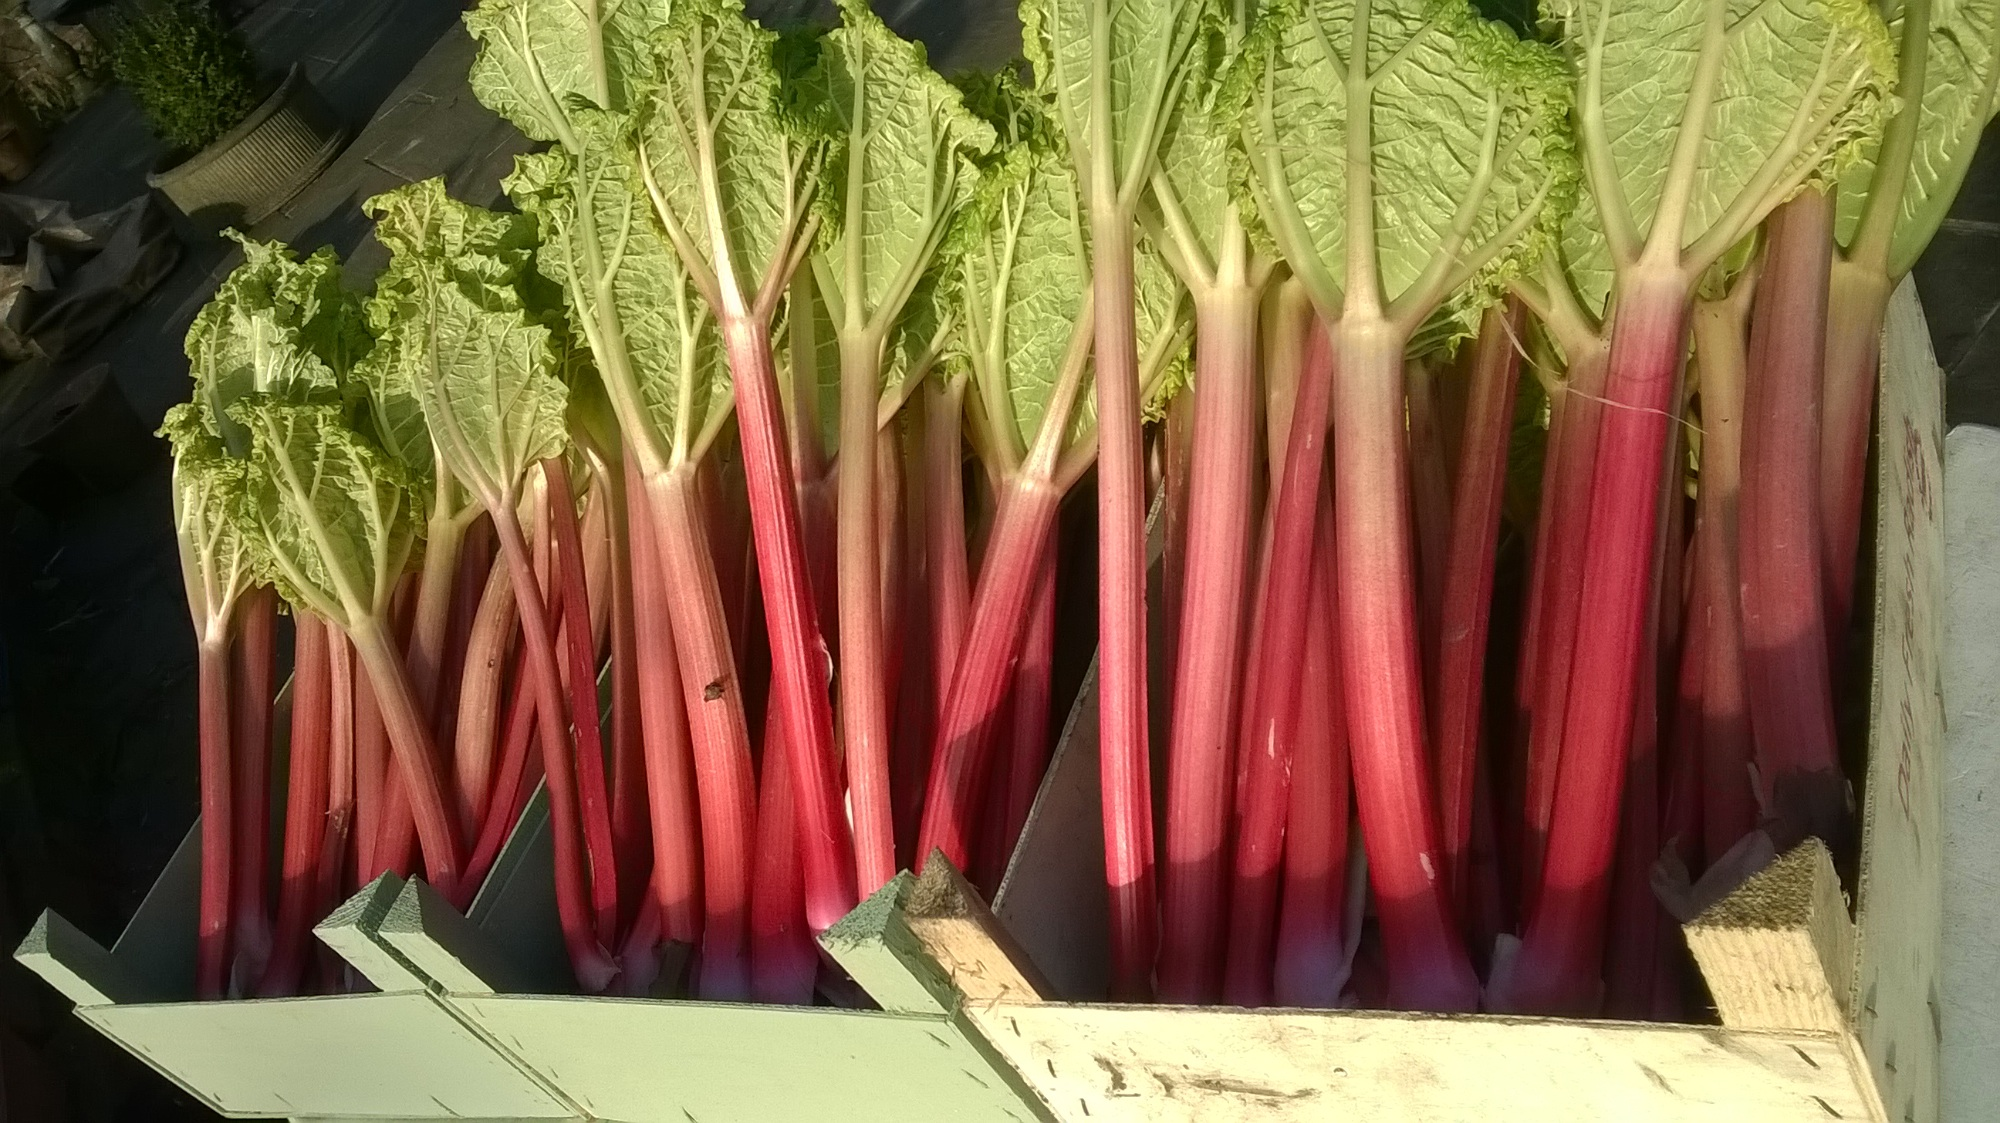 LOCAL HEREFORDSHIRE RHUBARB IN THIS WEEK FRESHLY PICKED FOR YOU